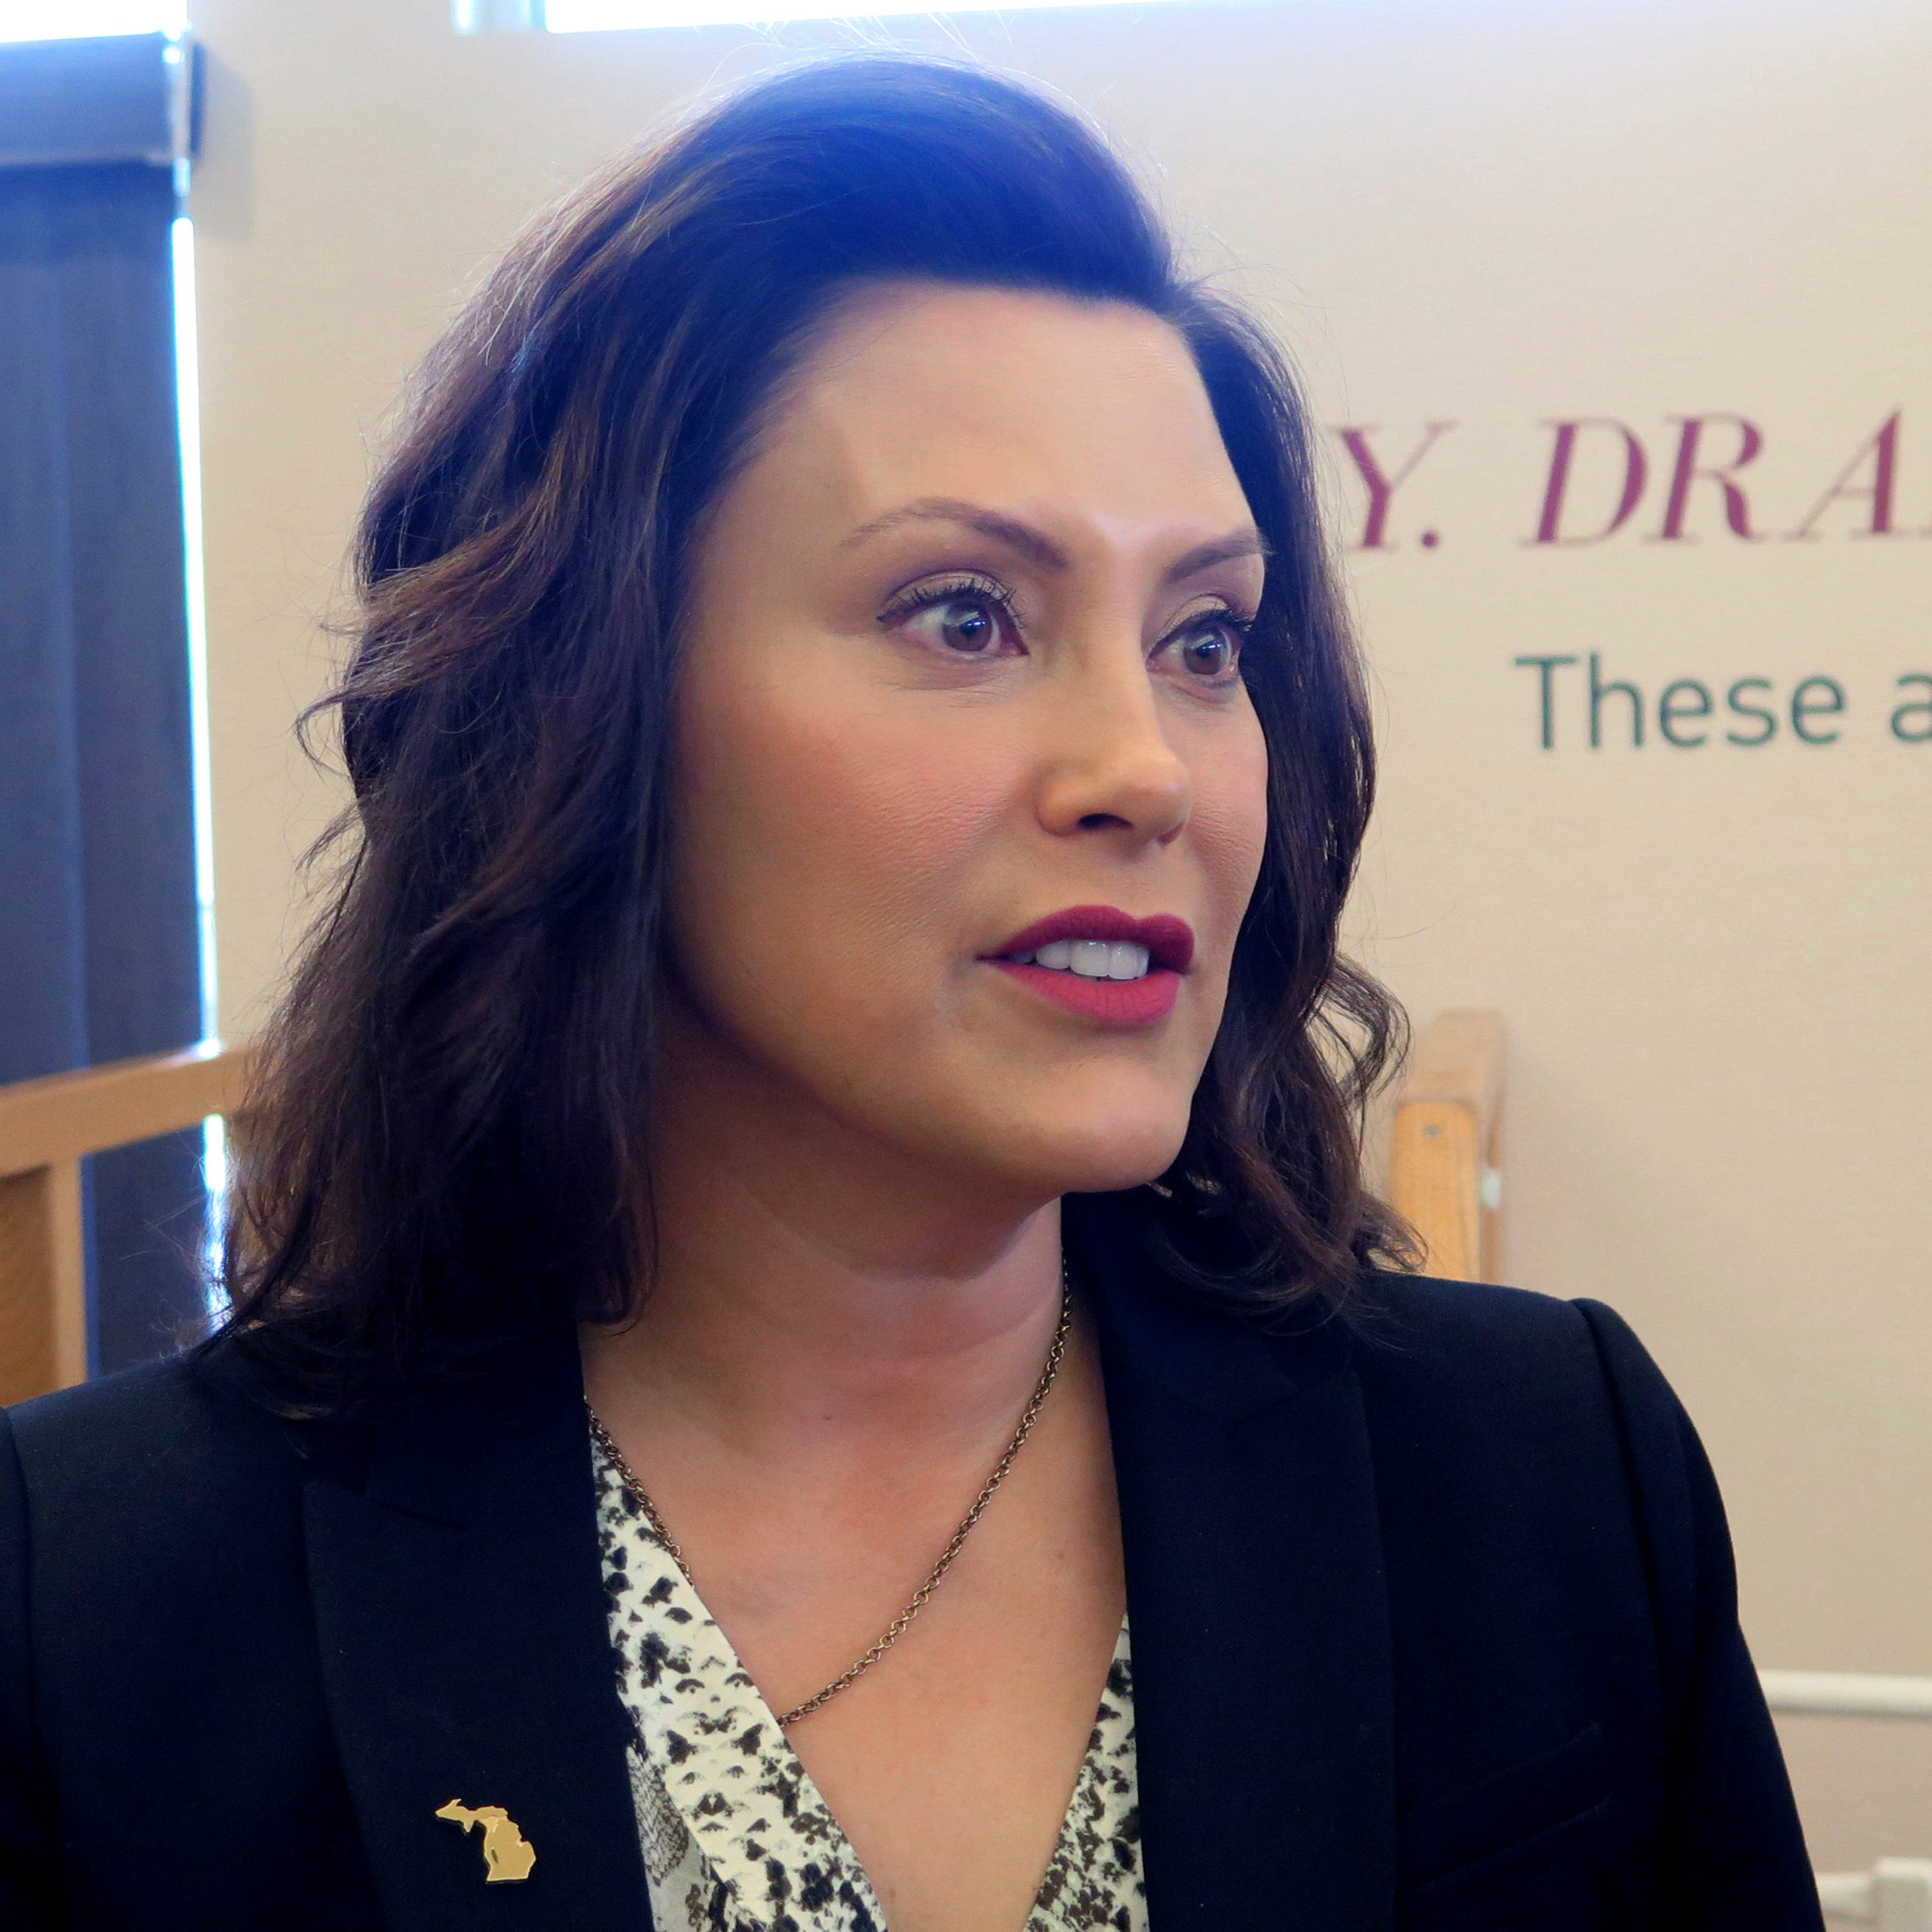 Whitmer among lawmakers sharing stories about rape in abortion debate